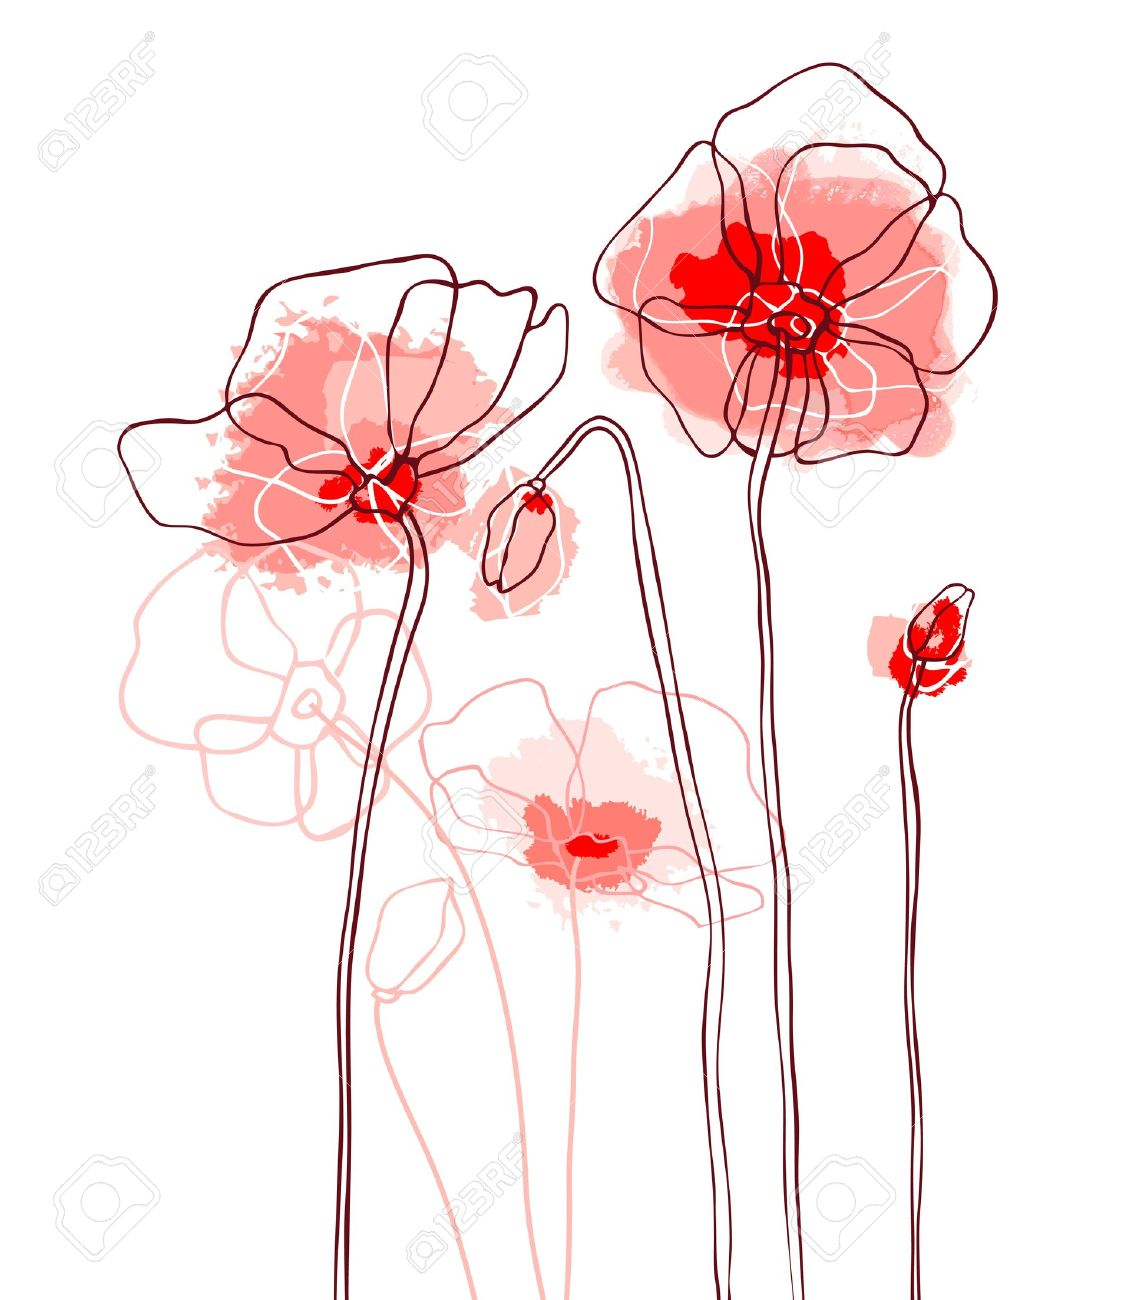 Red poppies on a white background Stock Vector - 12486685